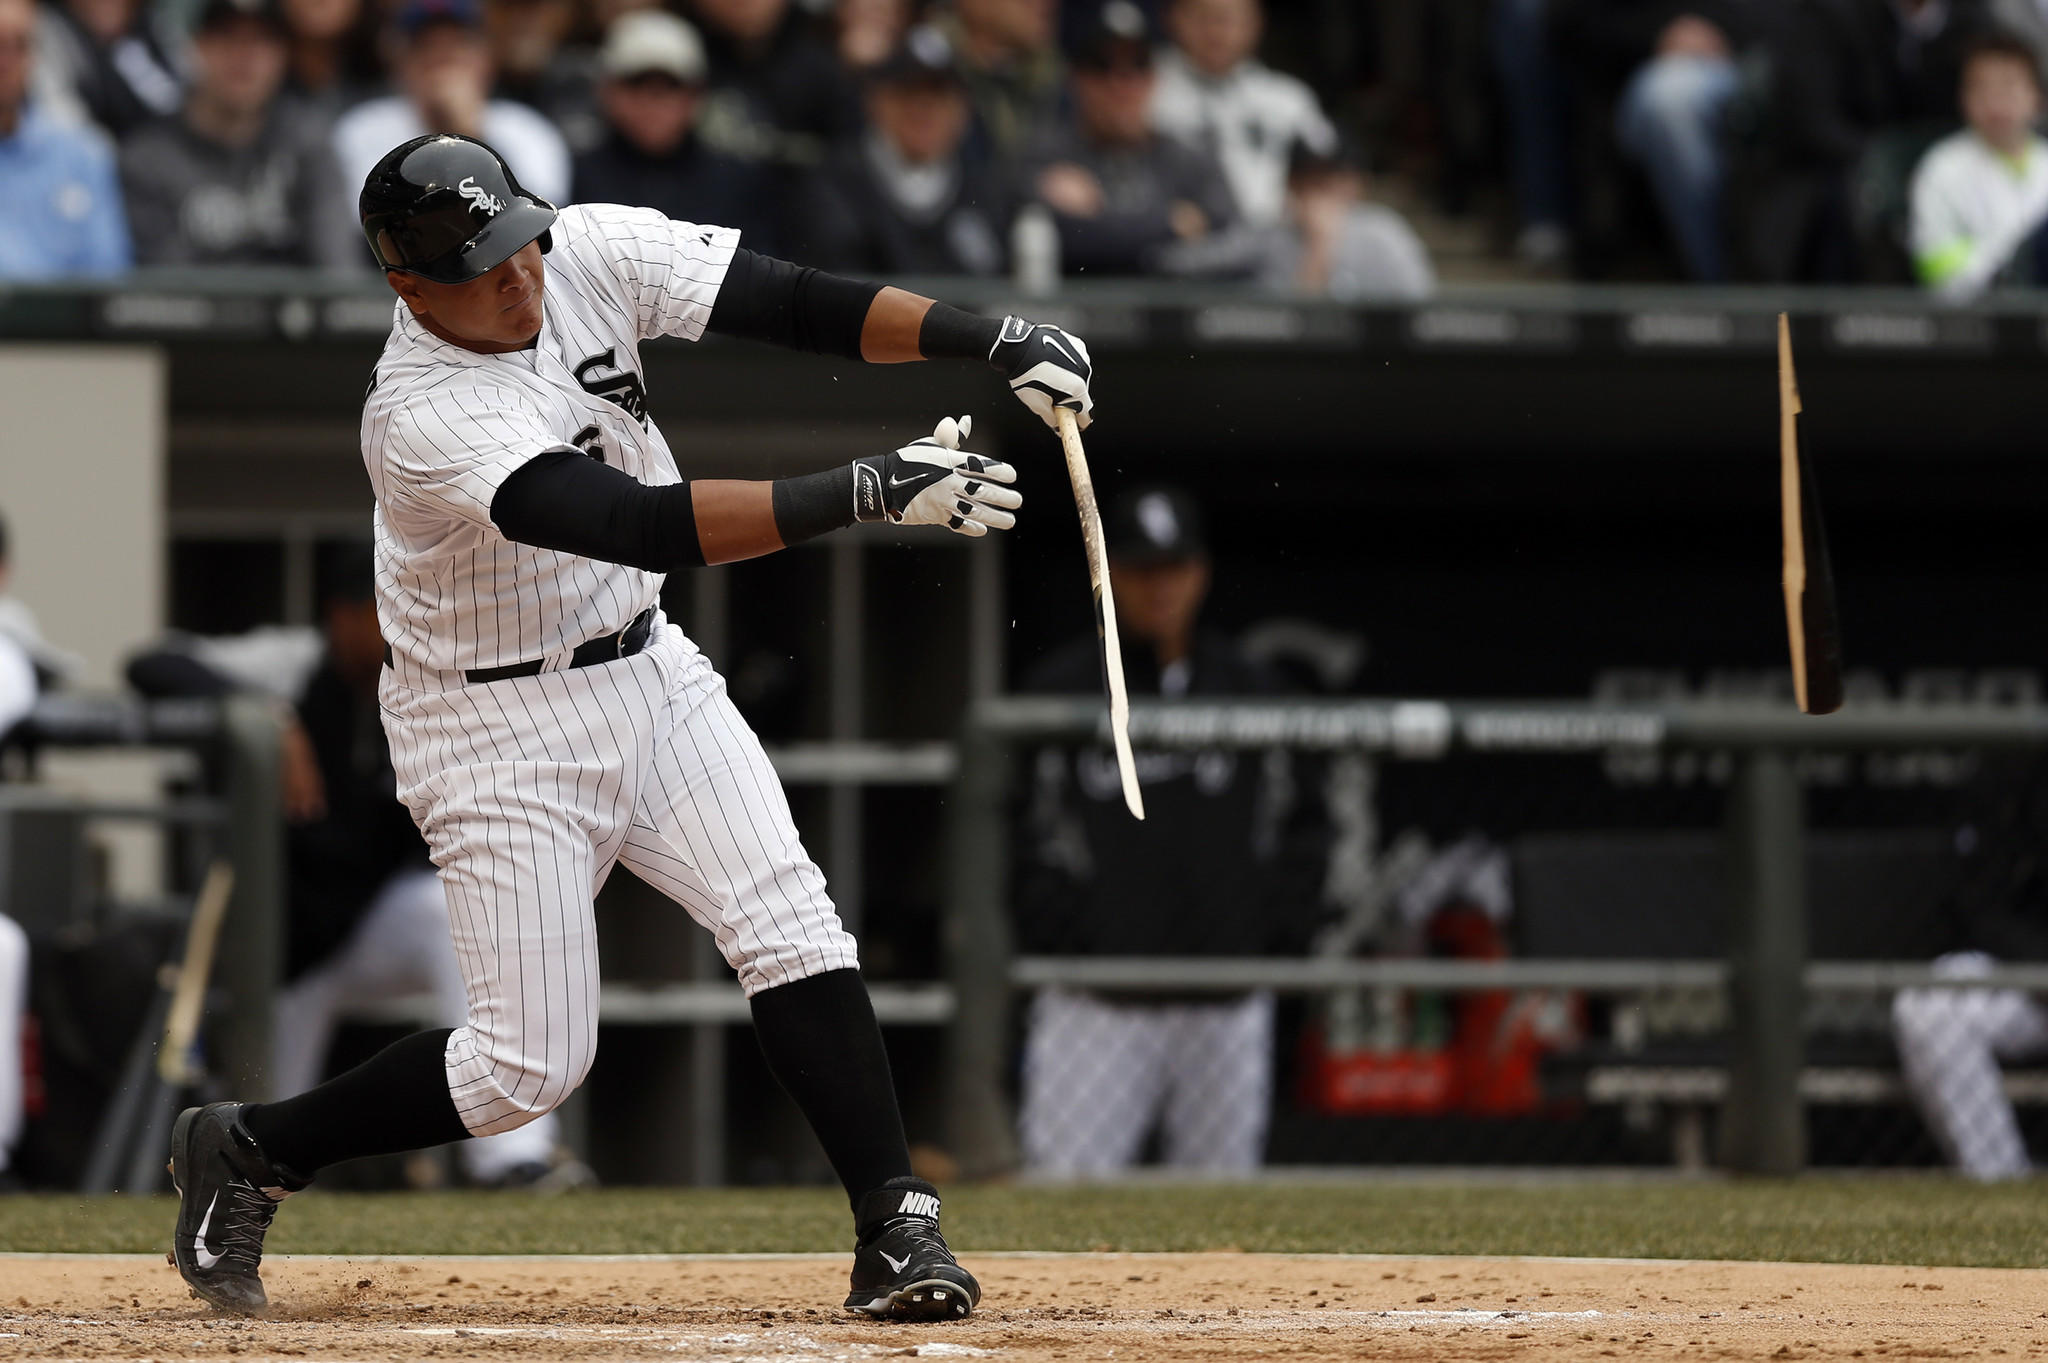 Avisail Garcia breaks his bat on a third-inning single against Minnesota Twins during the season opener at U.S. Cellular Field in Chicago on Monday.